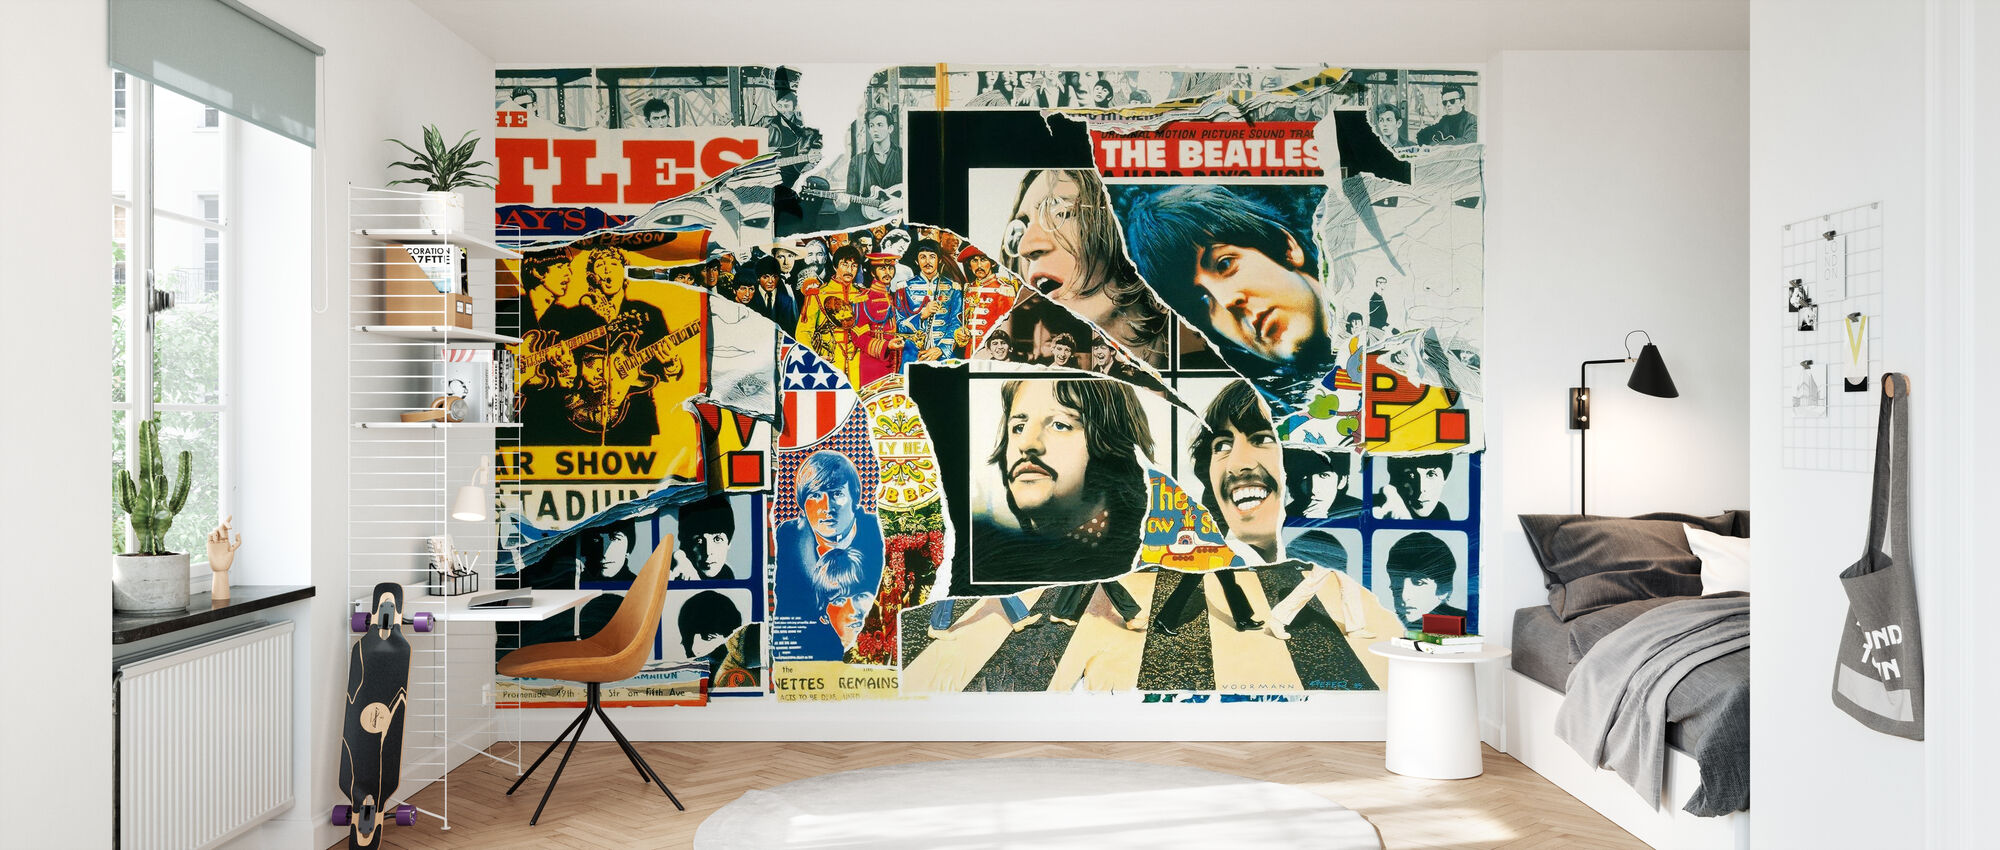 Beatles - Vintage Poster Wall - Wallpaper - Kids Room